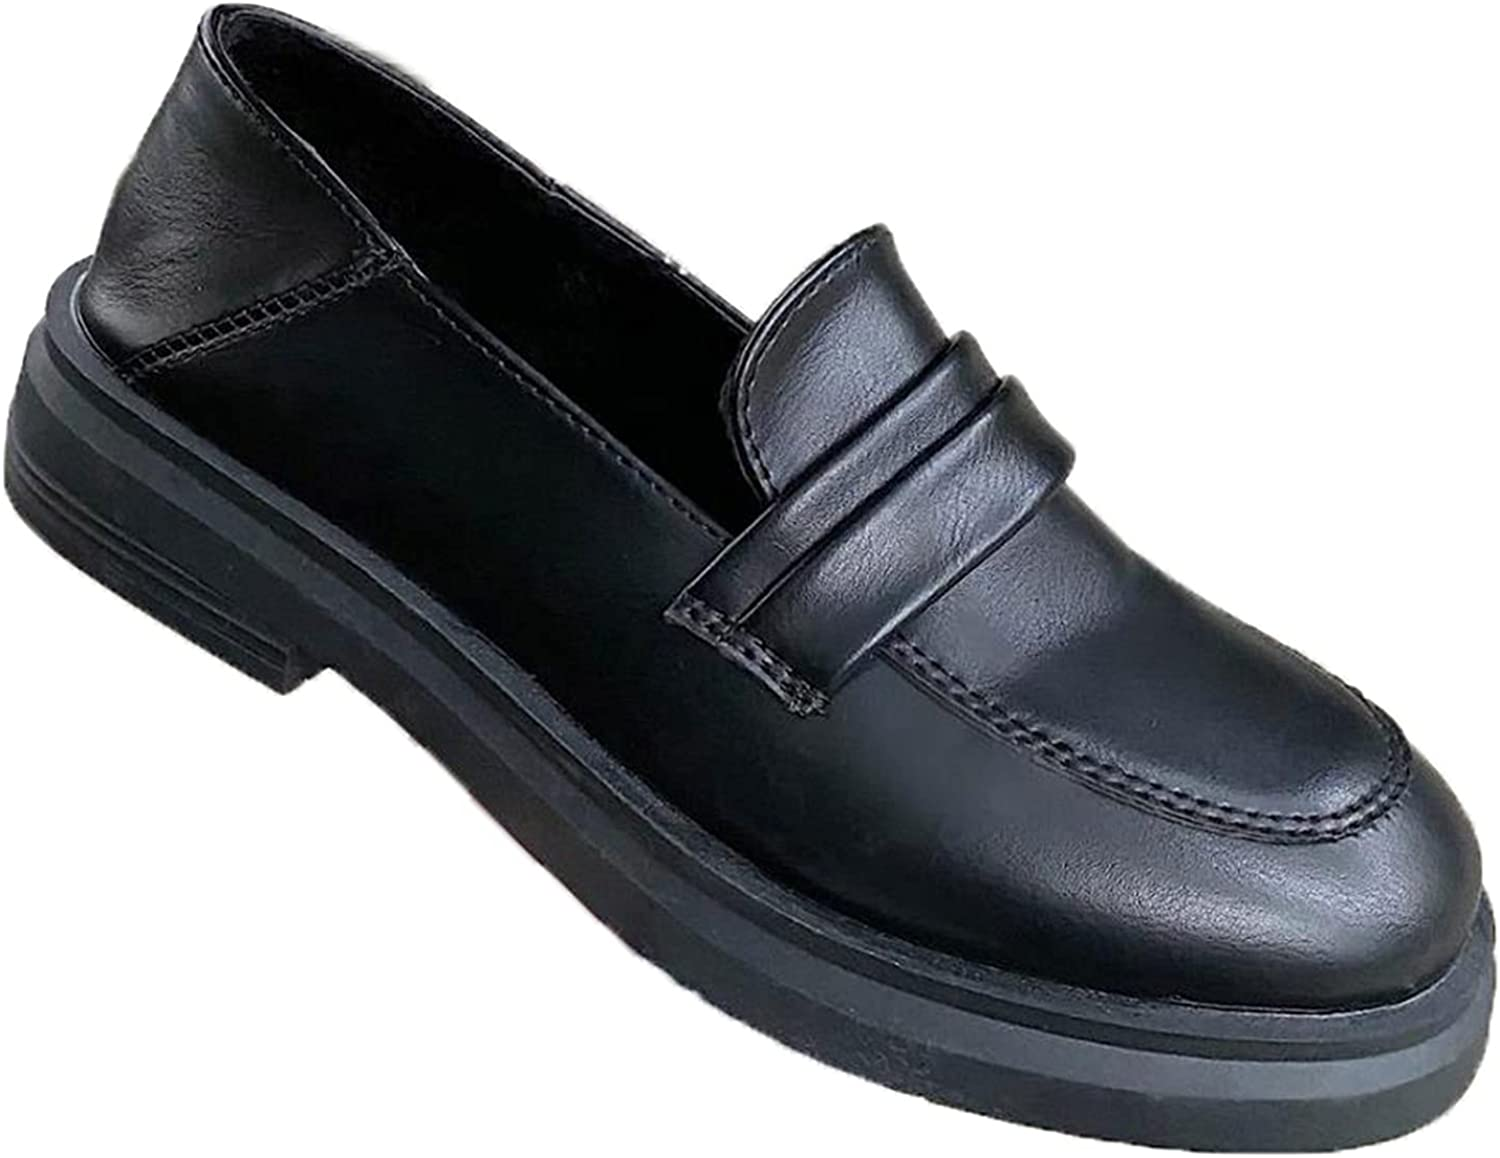 Loafers for Women Simple Round Styl Low-Cut Toe Slip-On Japanese Charlotte Super Special SALE held Mall